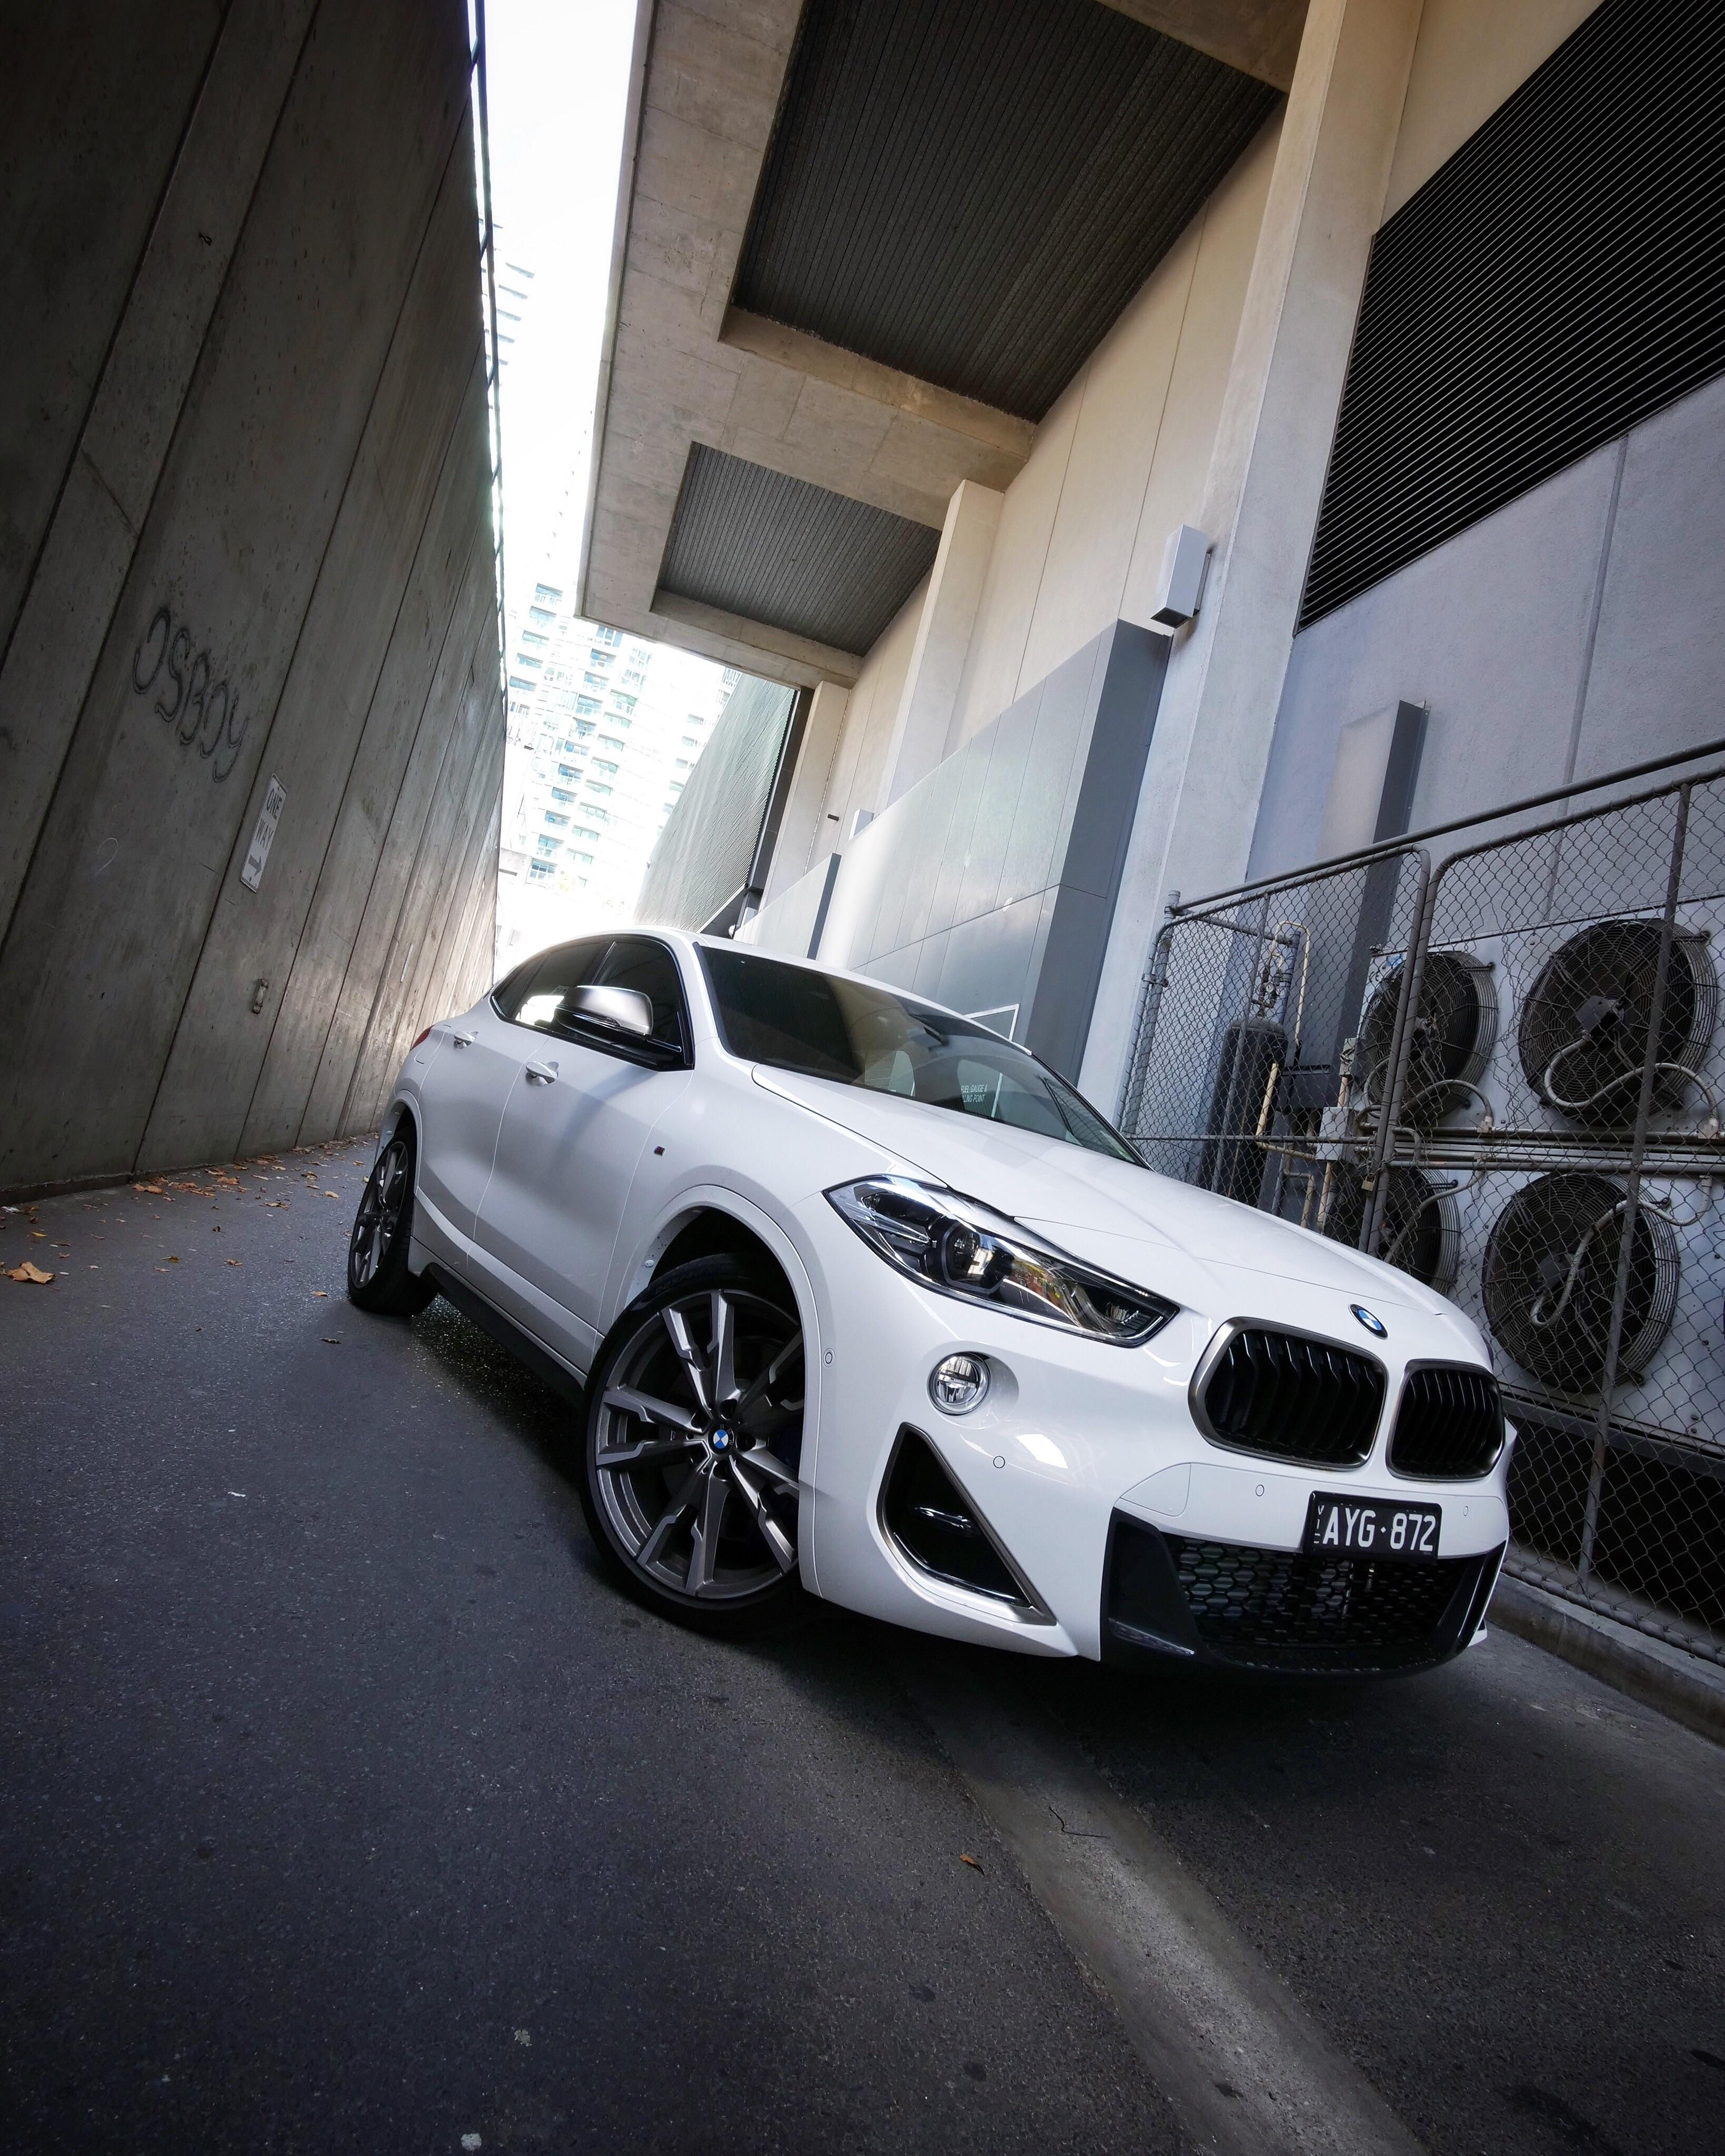 Bmw X2m35i Just Landed At Dealers Here In Melbourne Australia Thoughts Bmw Bmw Price Bmw Wagon